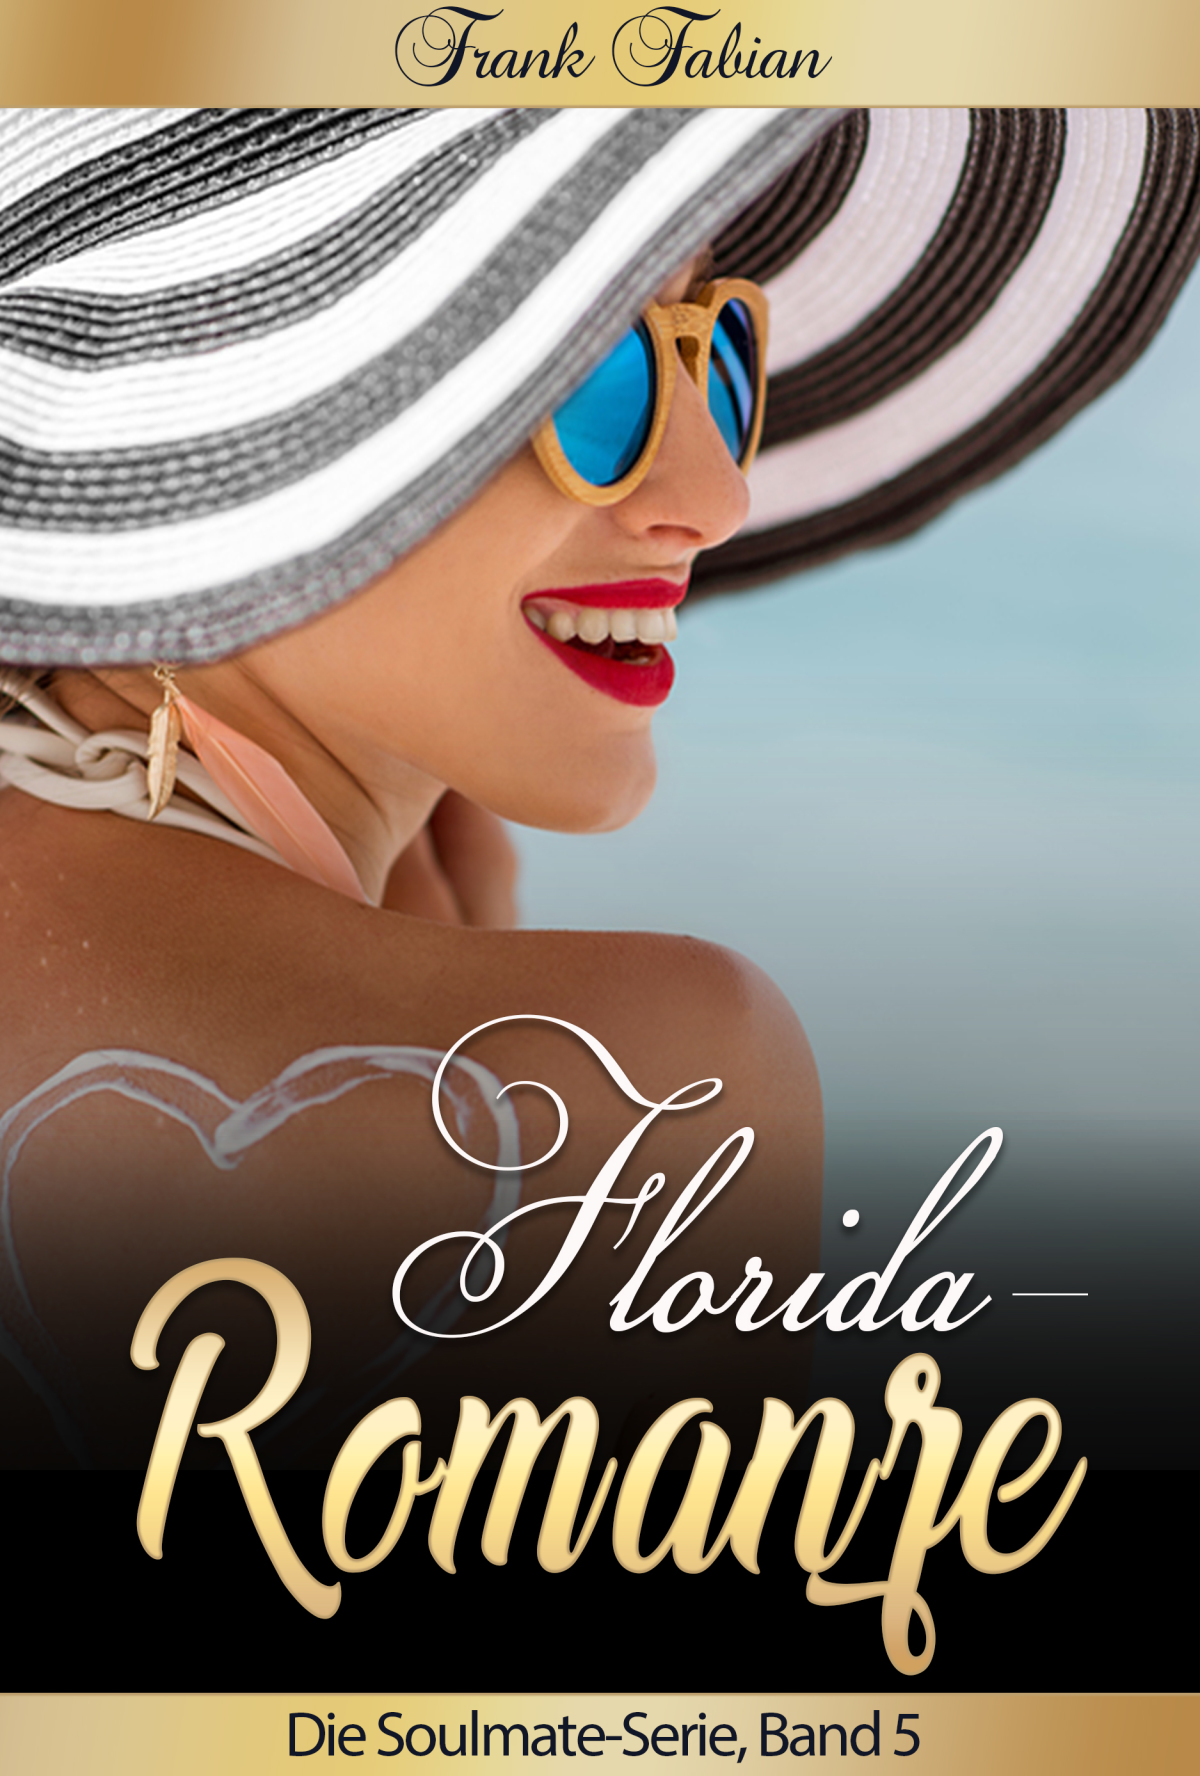 Florida Romanze 2 Ebook Cover